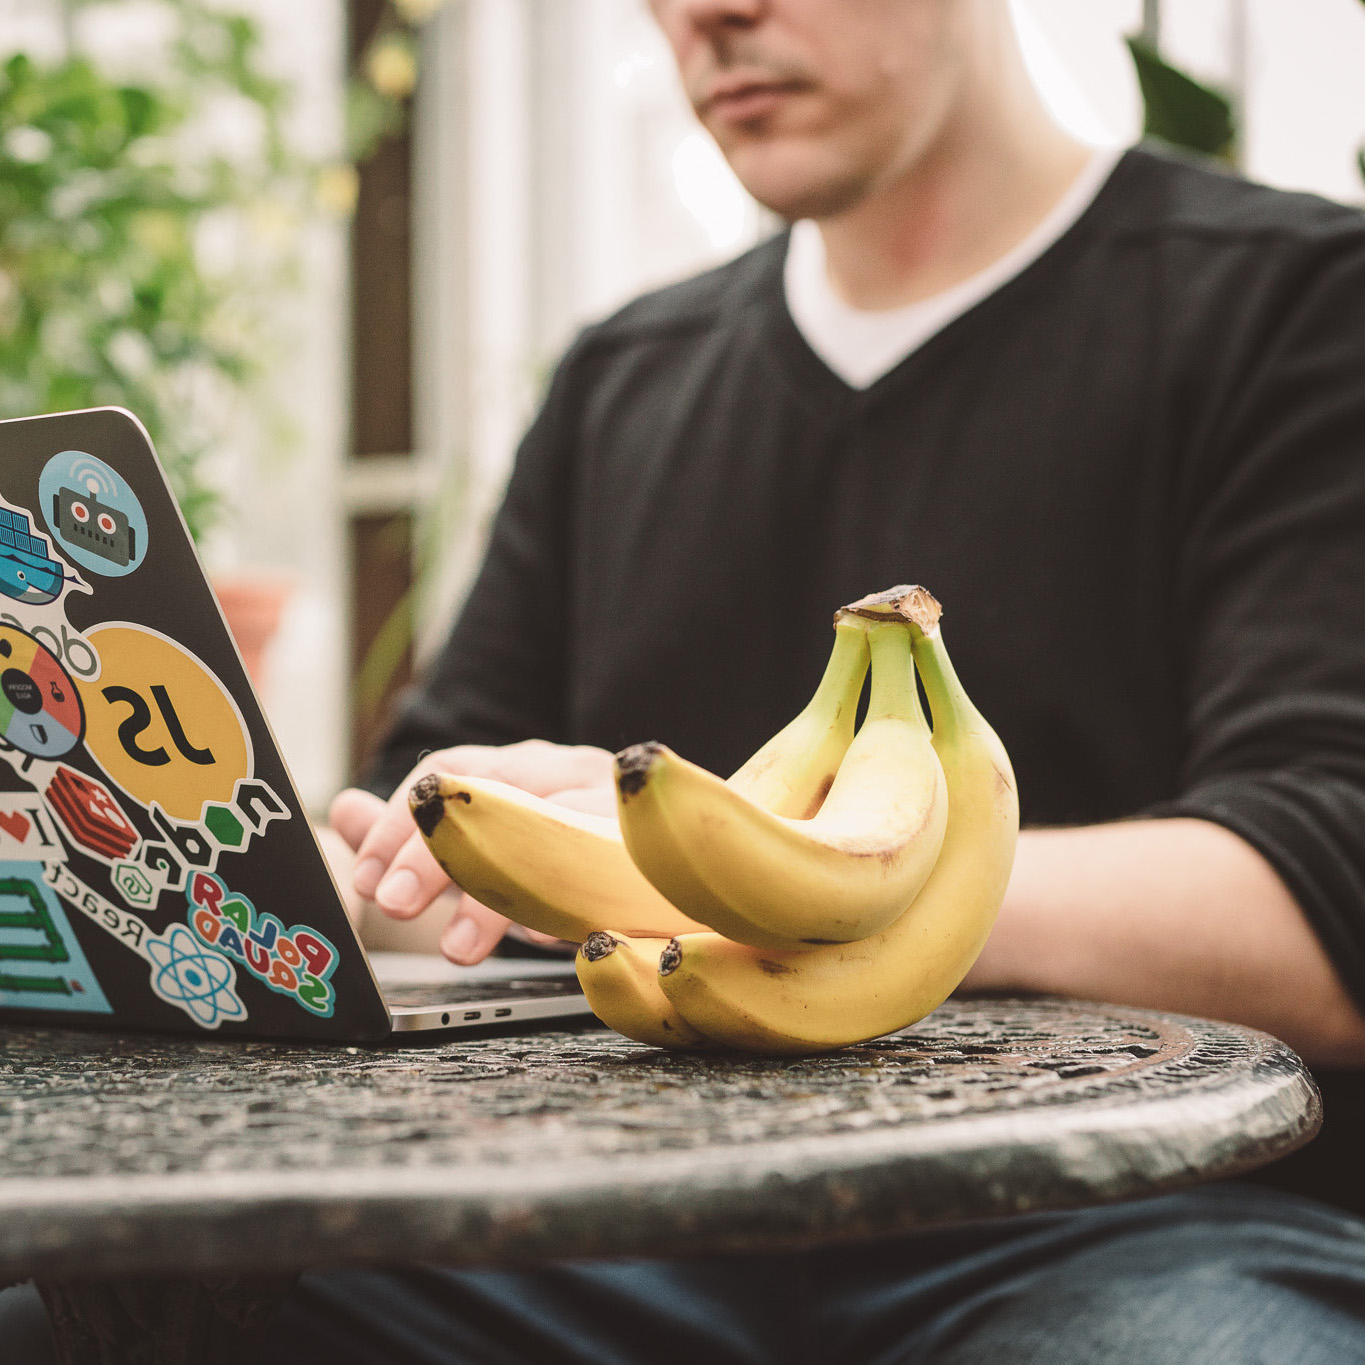 a banana and a person in the backgroud